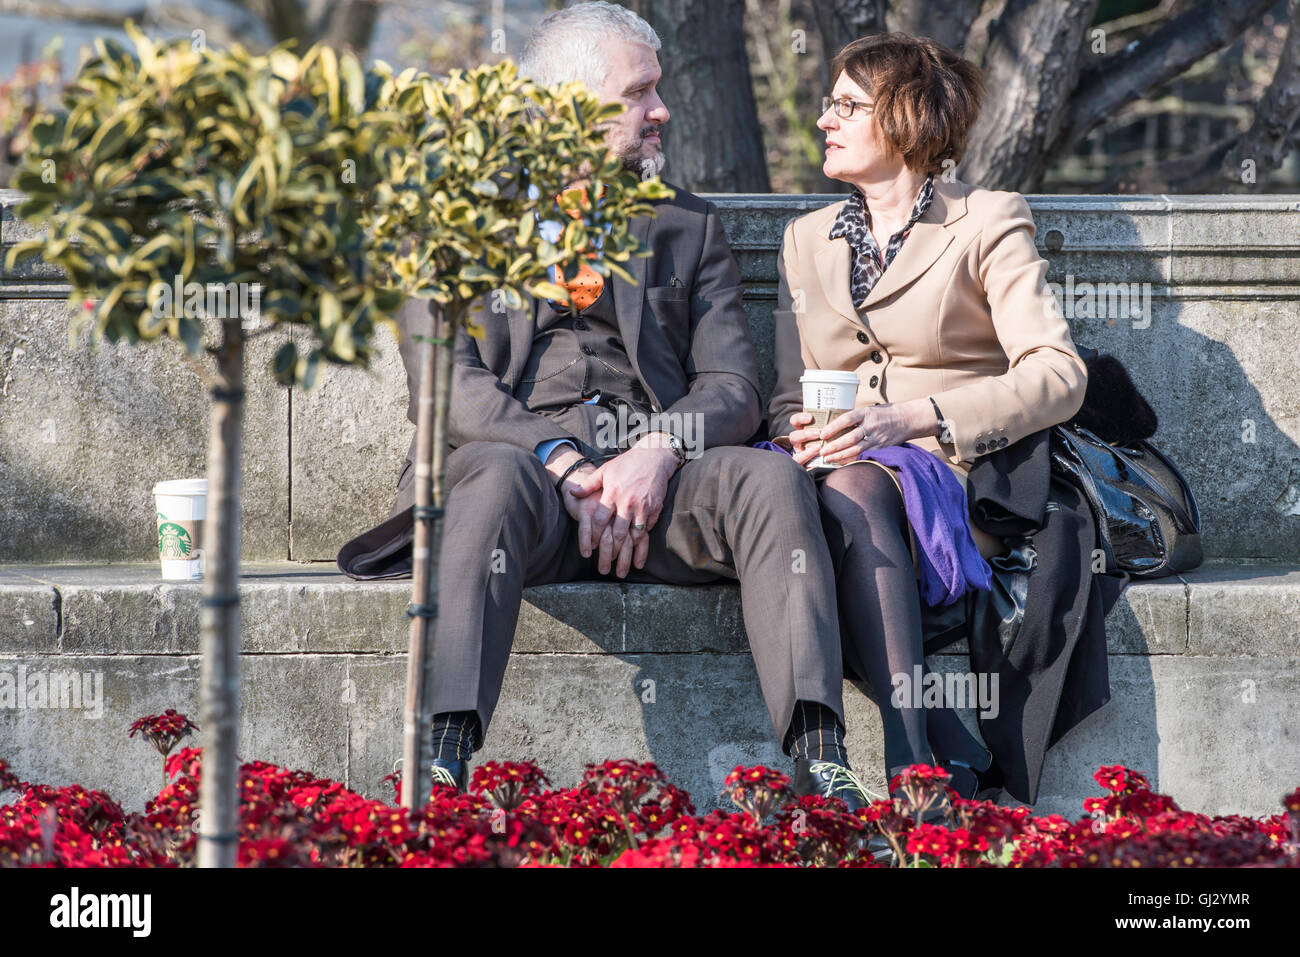 A couple, wearing suits, looking into each other's eyes and  talking intimately, as they sit in the sunshine - Stock Image